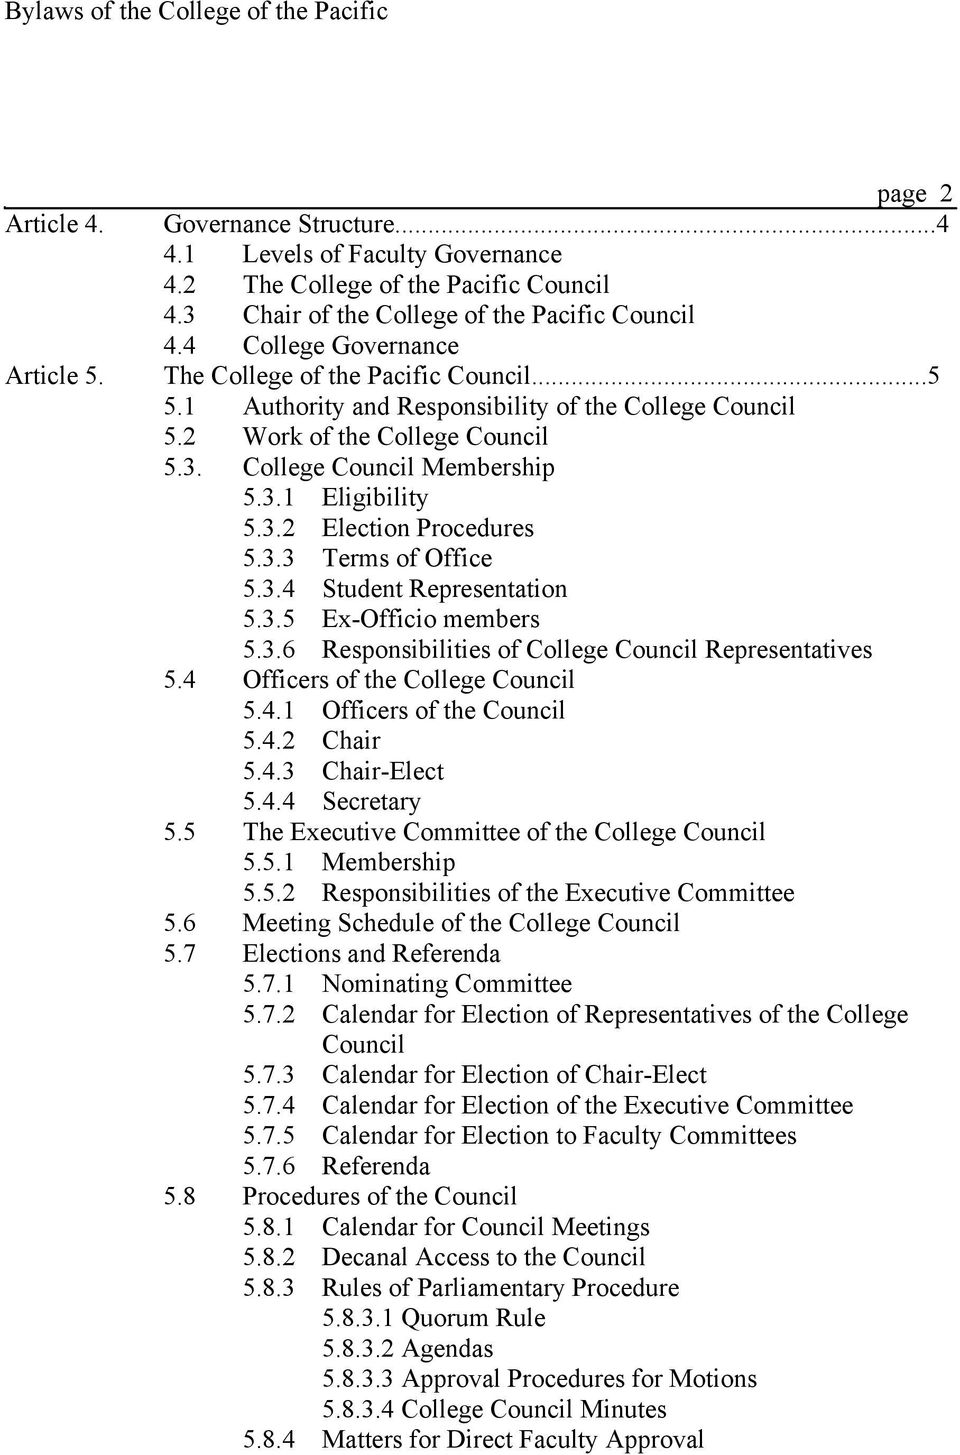 3.2 Election Procedures 5.3.3 Terms of Office 5.3.4 Student Representation 5.3.5 Ex-Officio members 5.3.6 Responsibilities of College Council Representatives 5.4 Officers of the College Council 5.4.1 Officers of the Council 5.